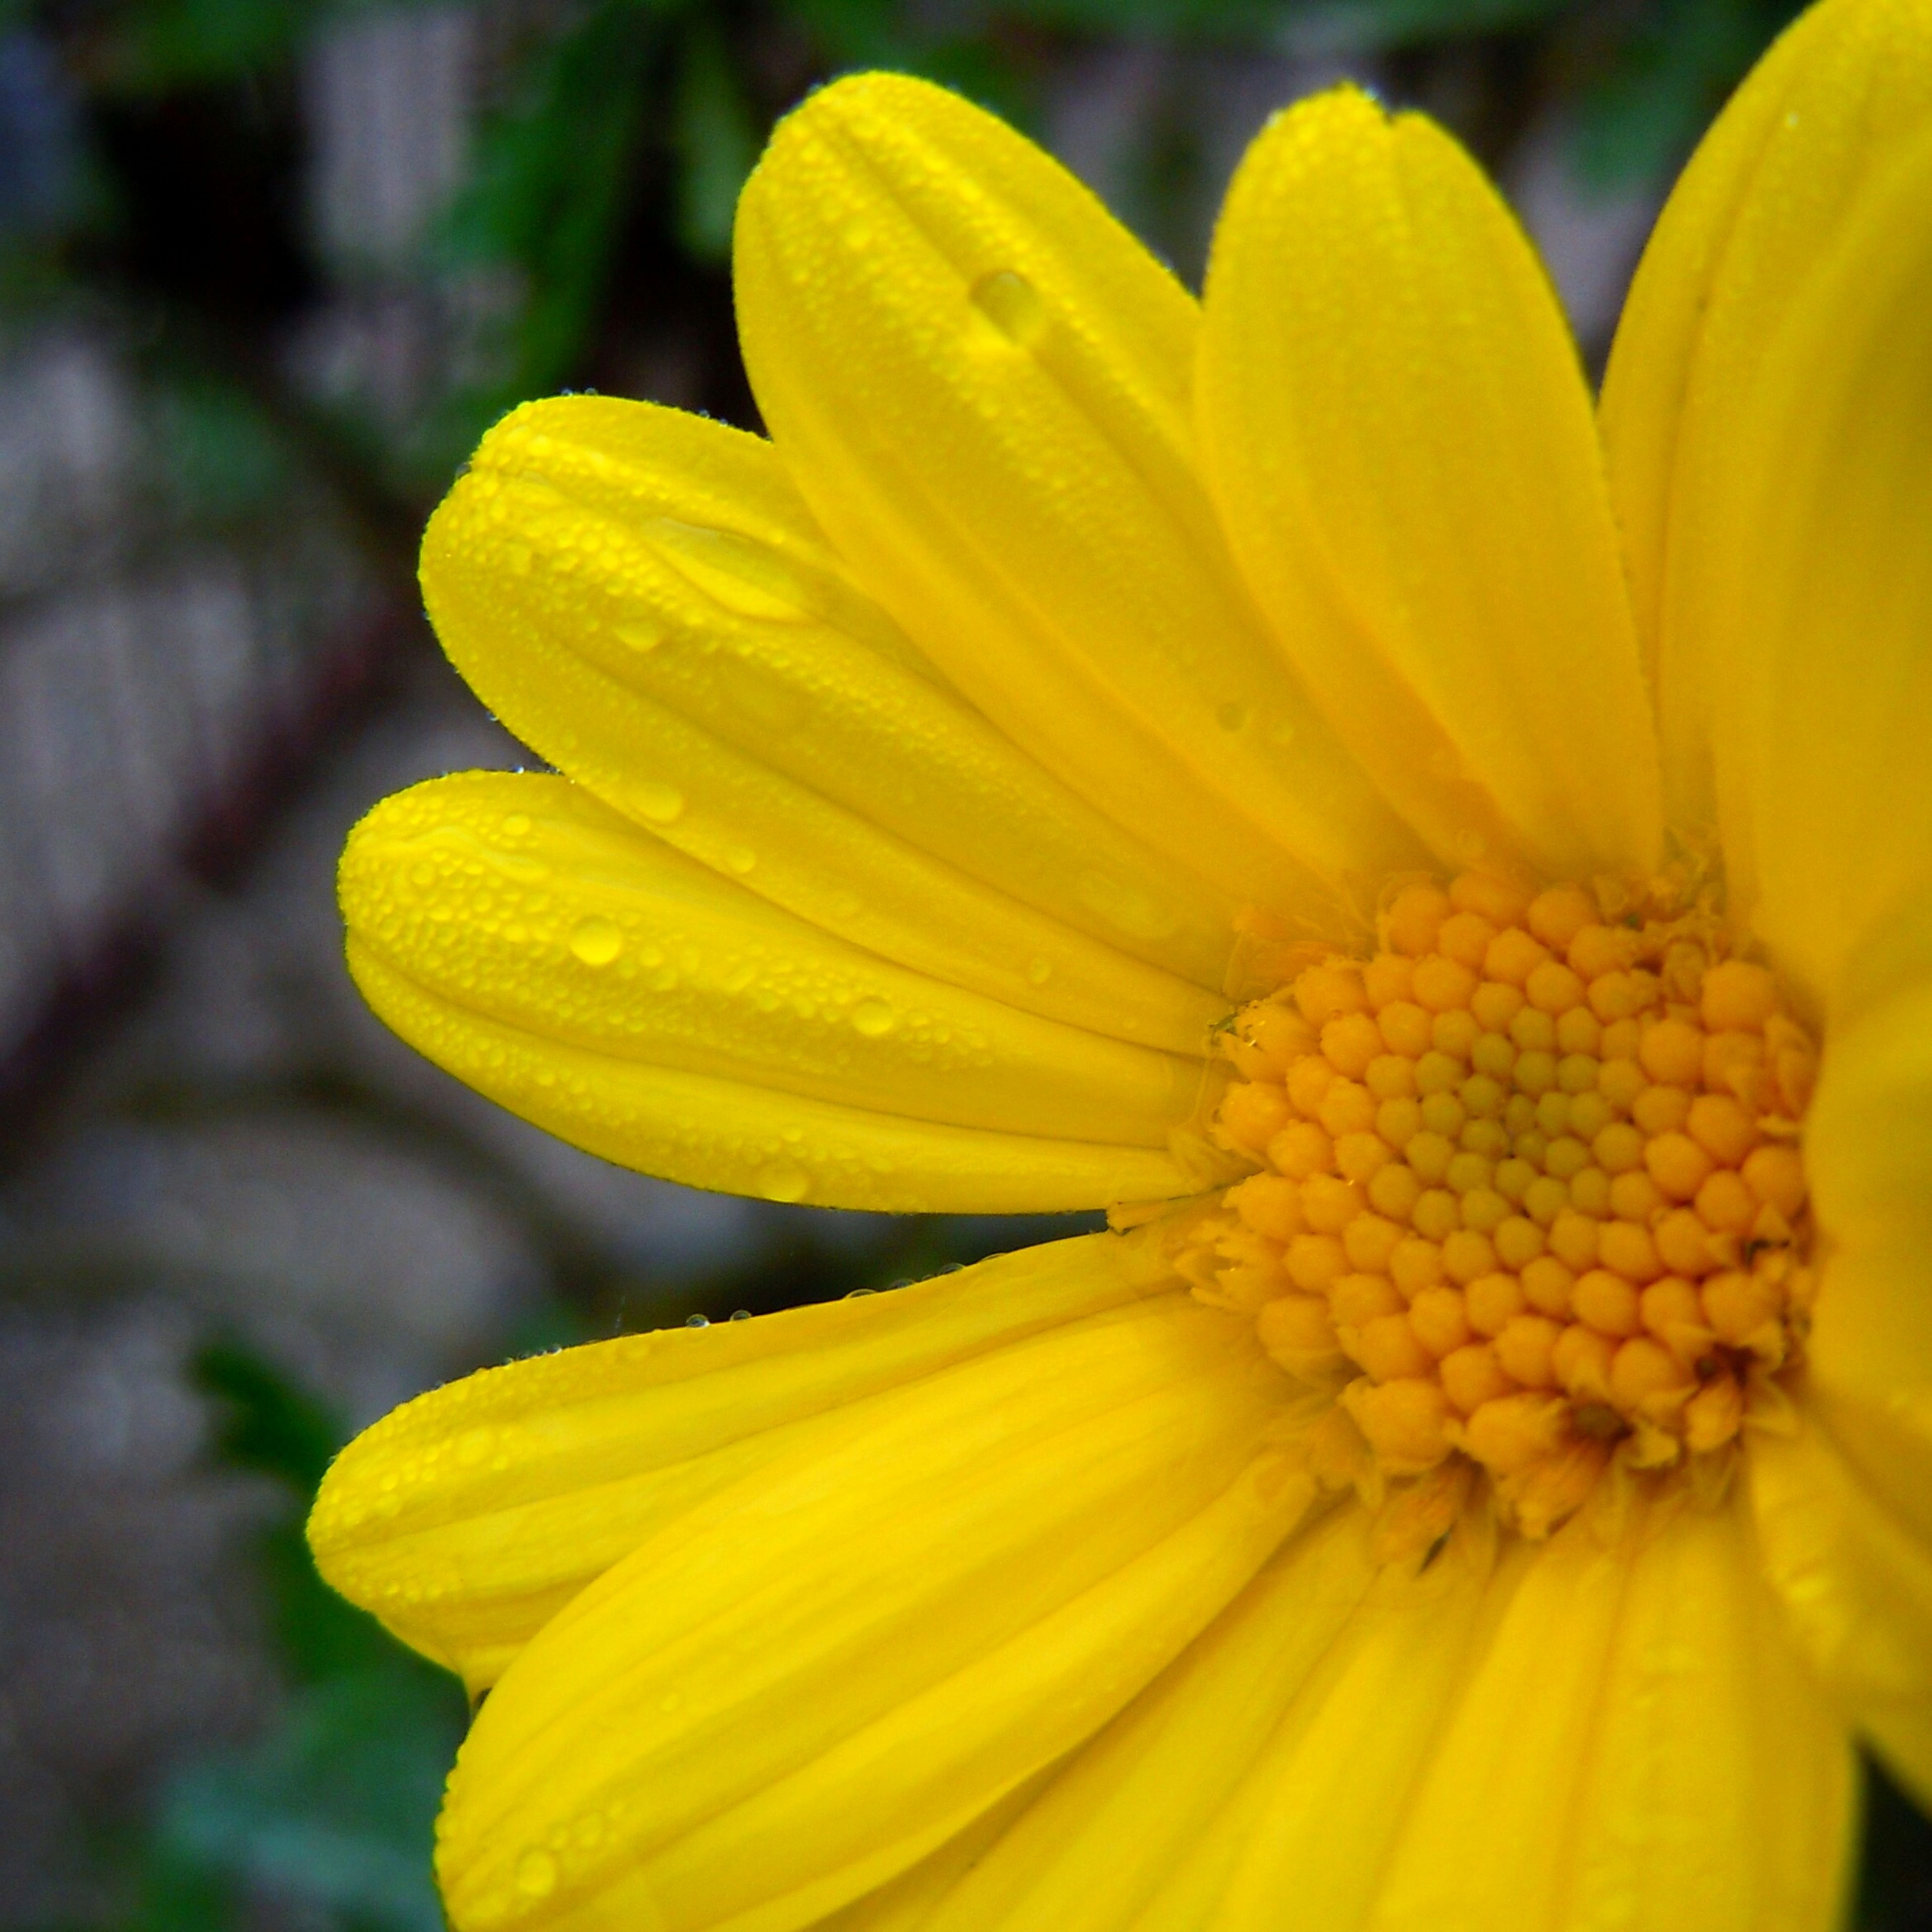 yellow, flower, petal, freshness, fragility, flower head, close-up, growth, beauty in nature, focus on foreground, nature, blooming, in bloom, pollen, plant, selective focus, vibrant color, blossom, drop, stamen